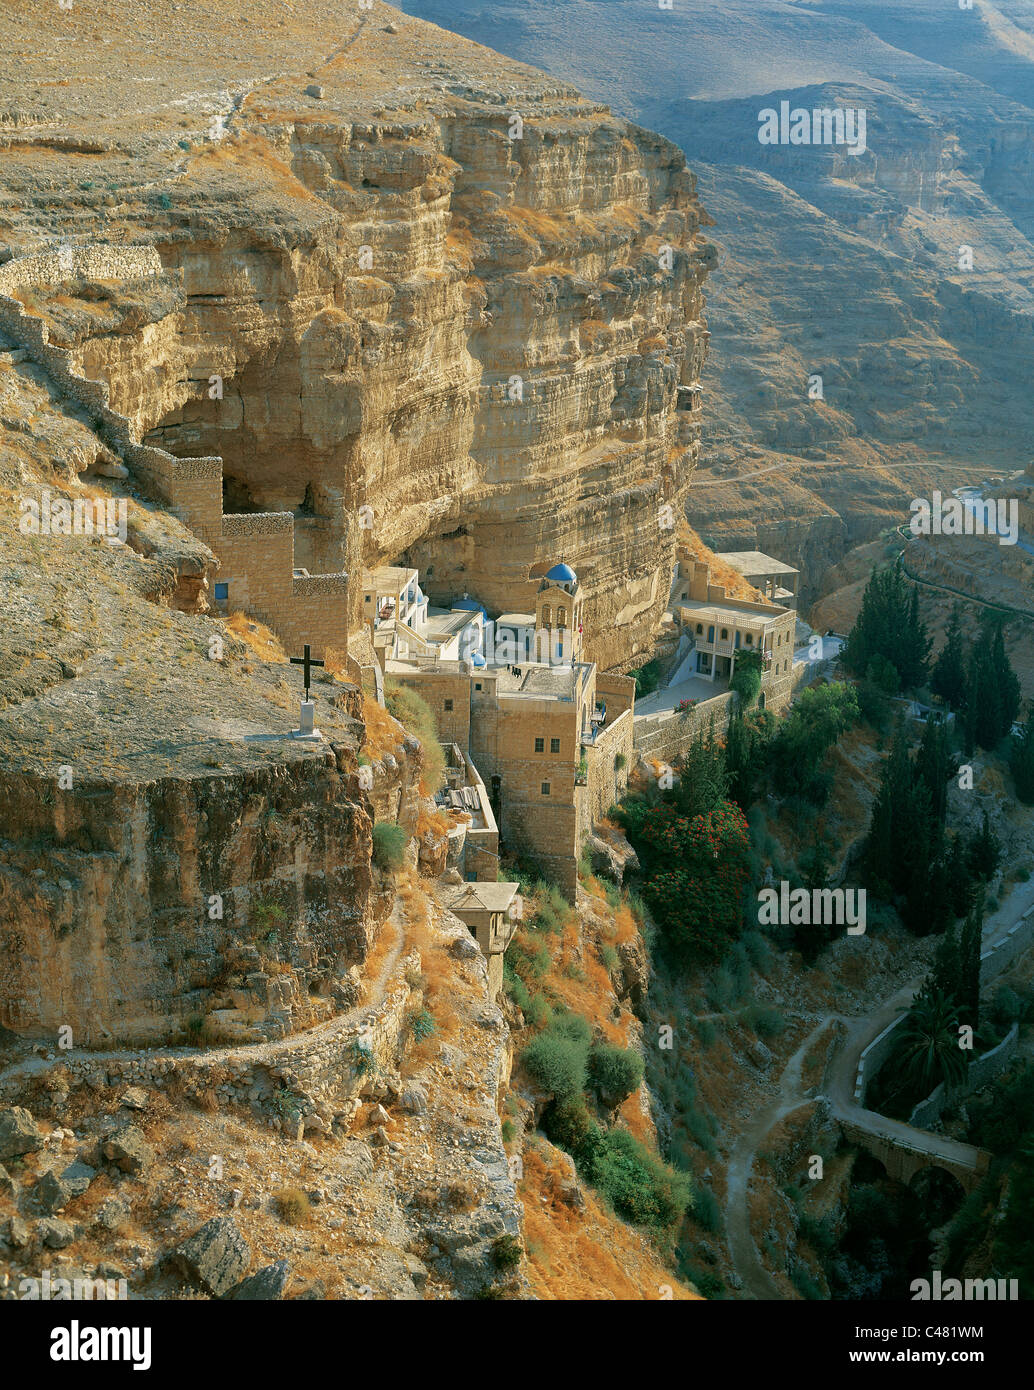 Aerial view of the monastery of ST. George in Wadi Kelt - Stock Image